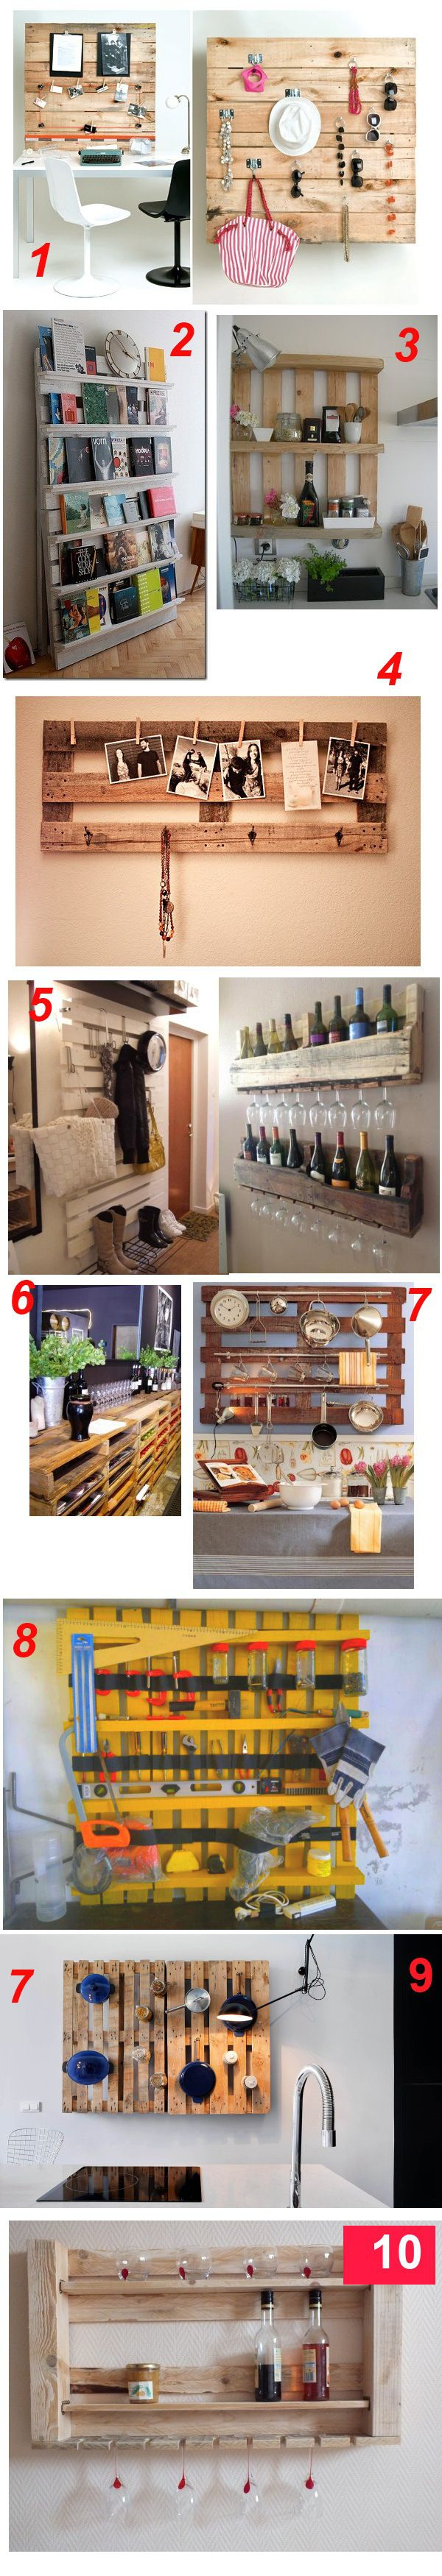 Palet DIY - Going to have to take some form work! | decorating ...